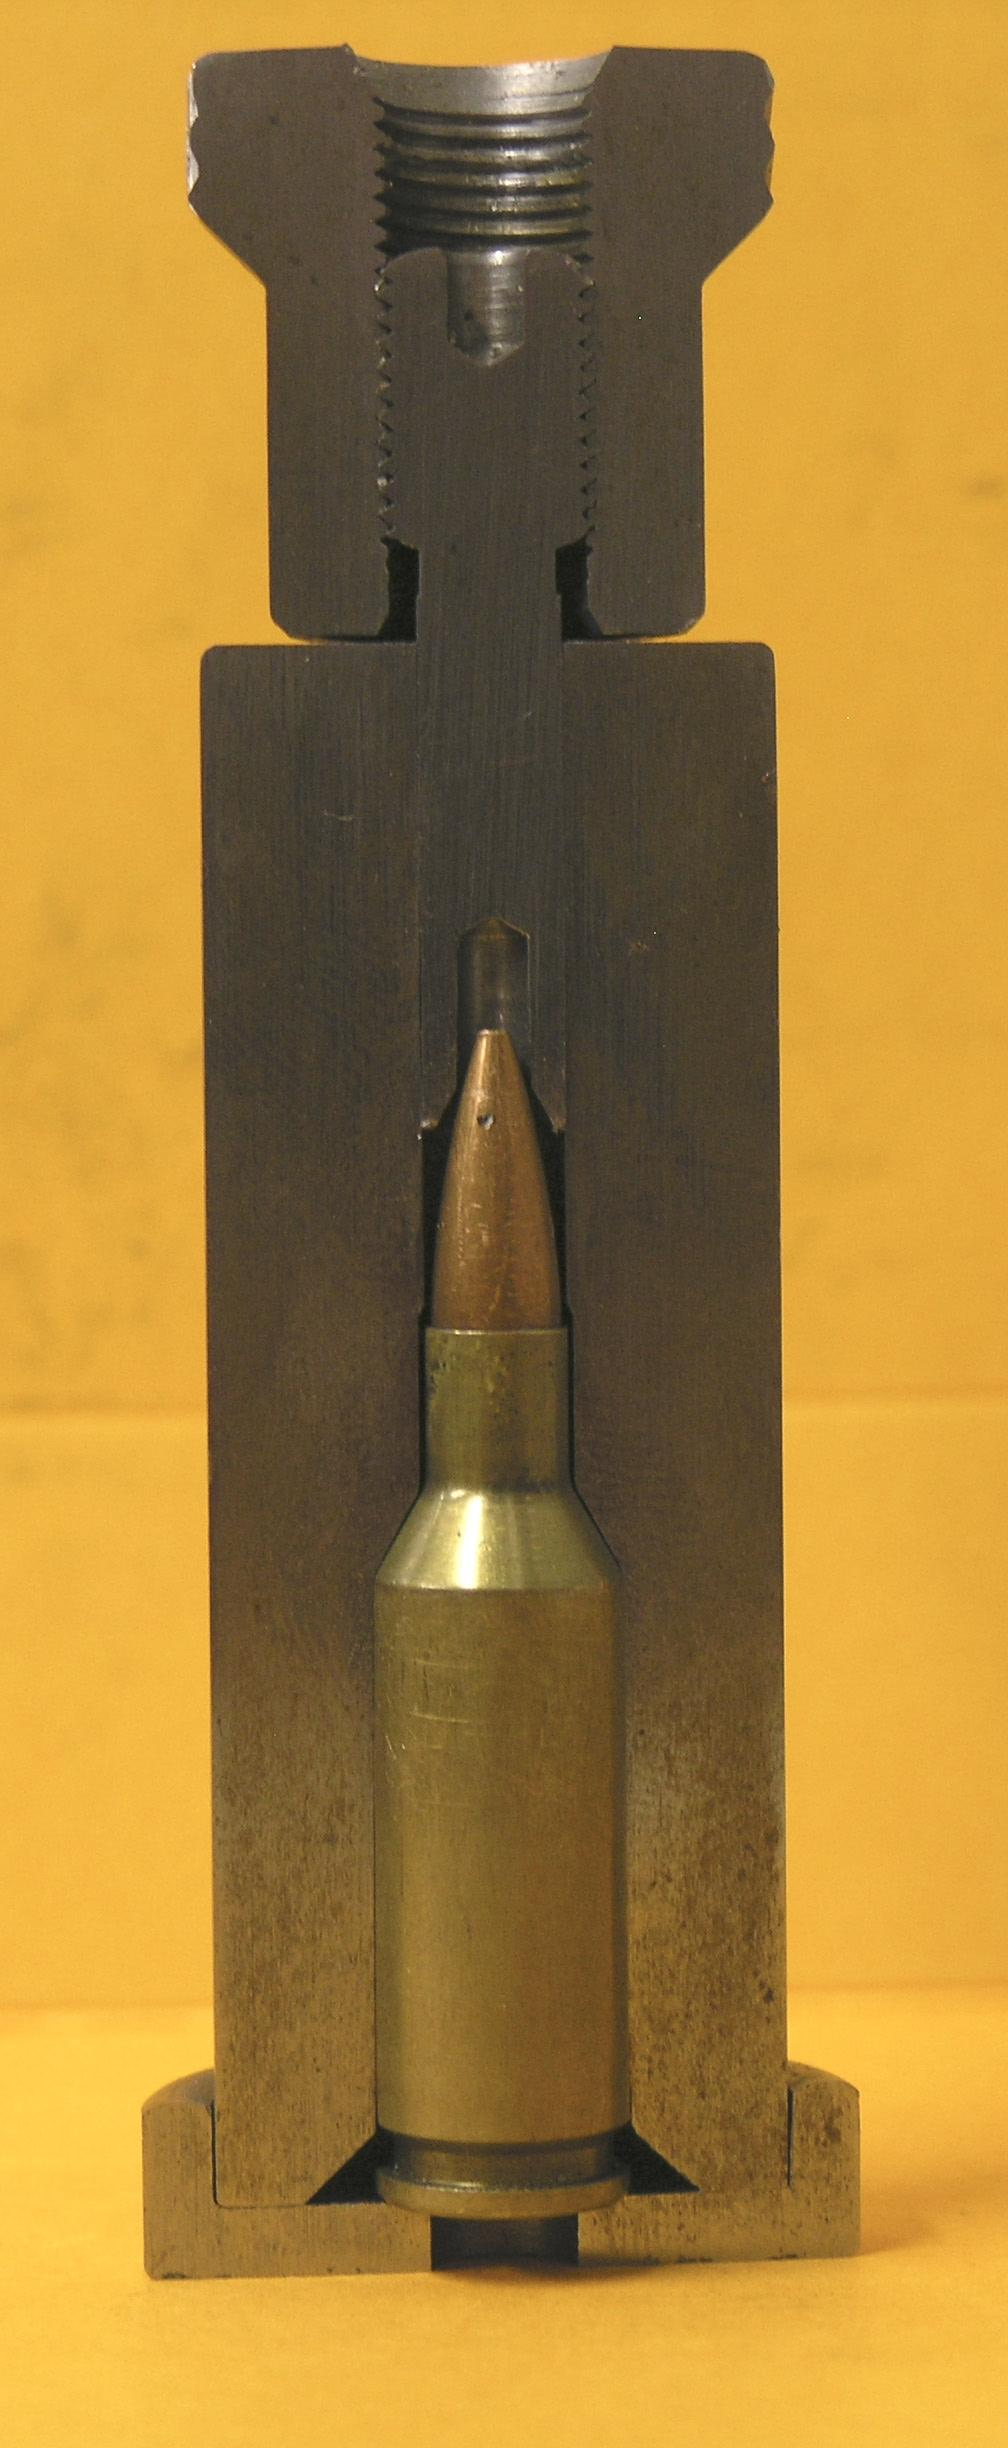 For Accurate Uniform Handloads Straight Line Bullet Seating 404 Pioneer Ave or P.O. Box 324 Cashmere, WA.